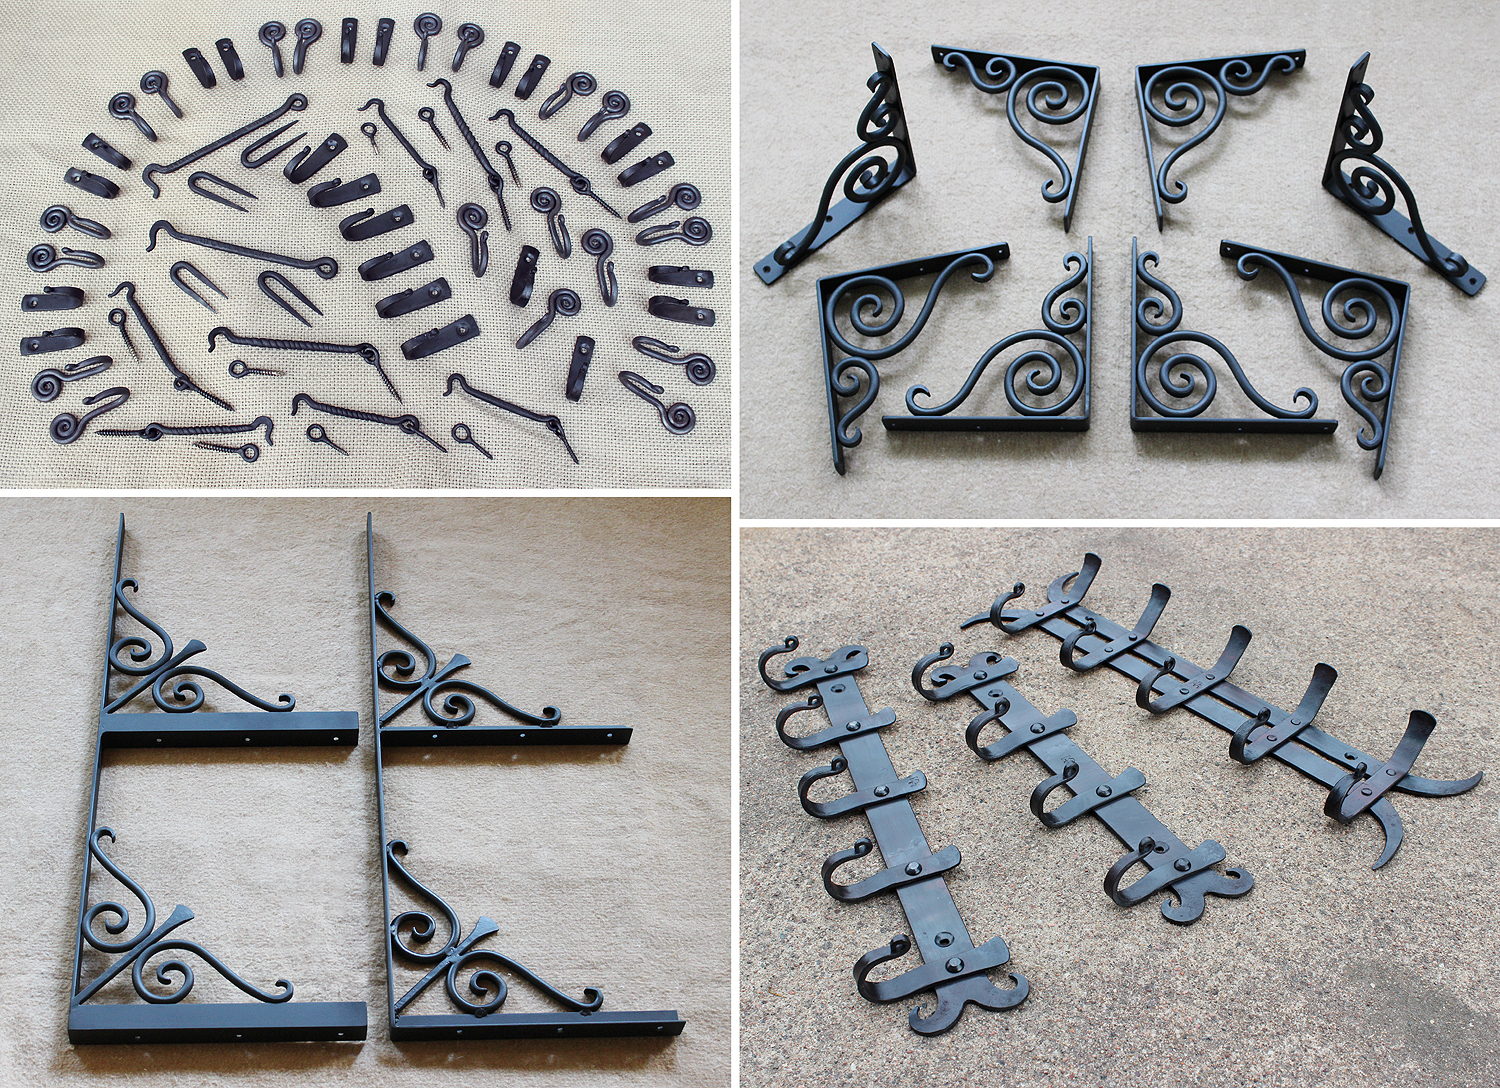 Forged Objects 18 By Astalo On Deviantart